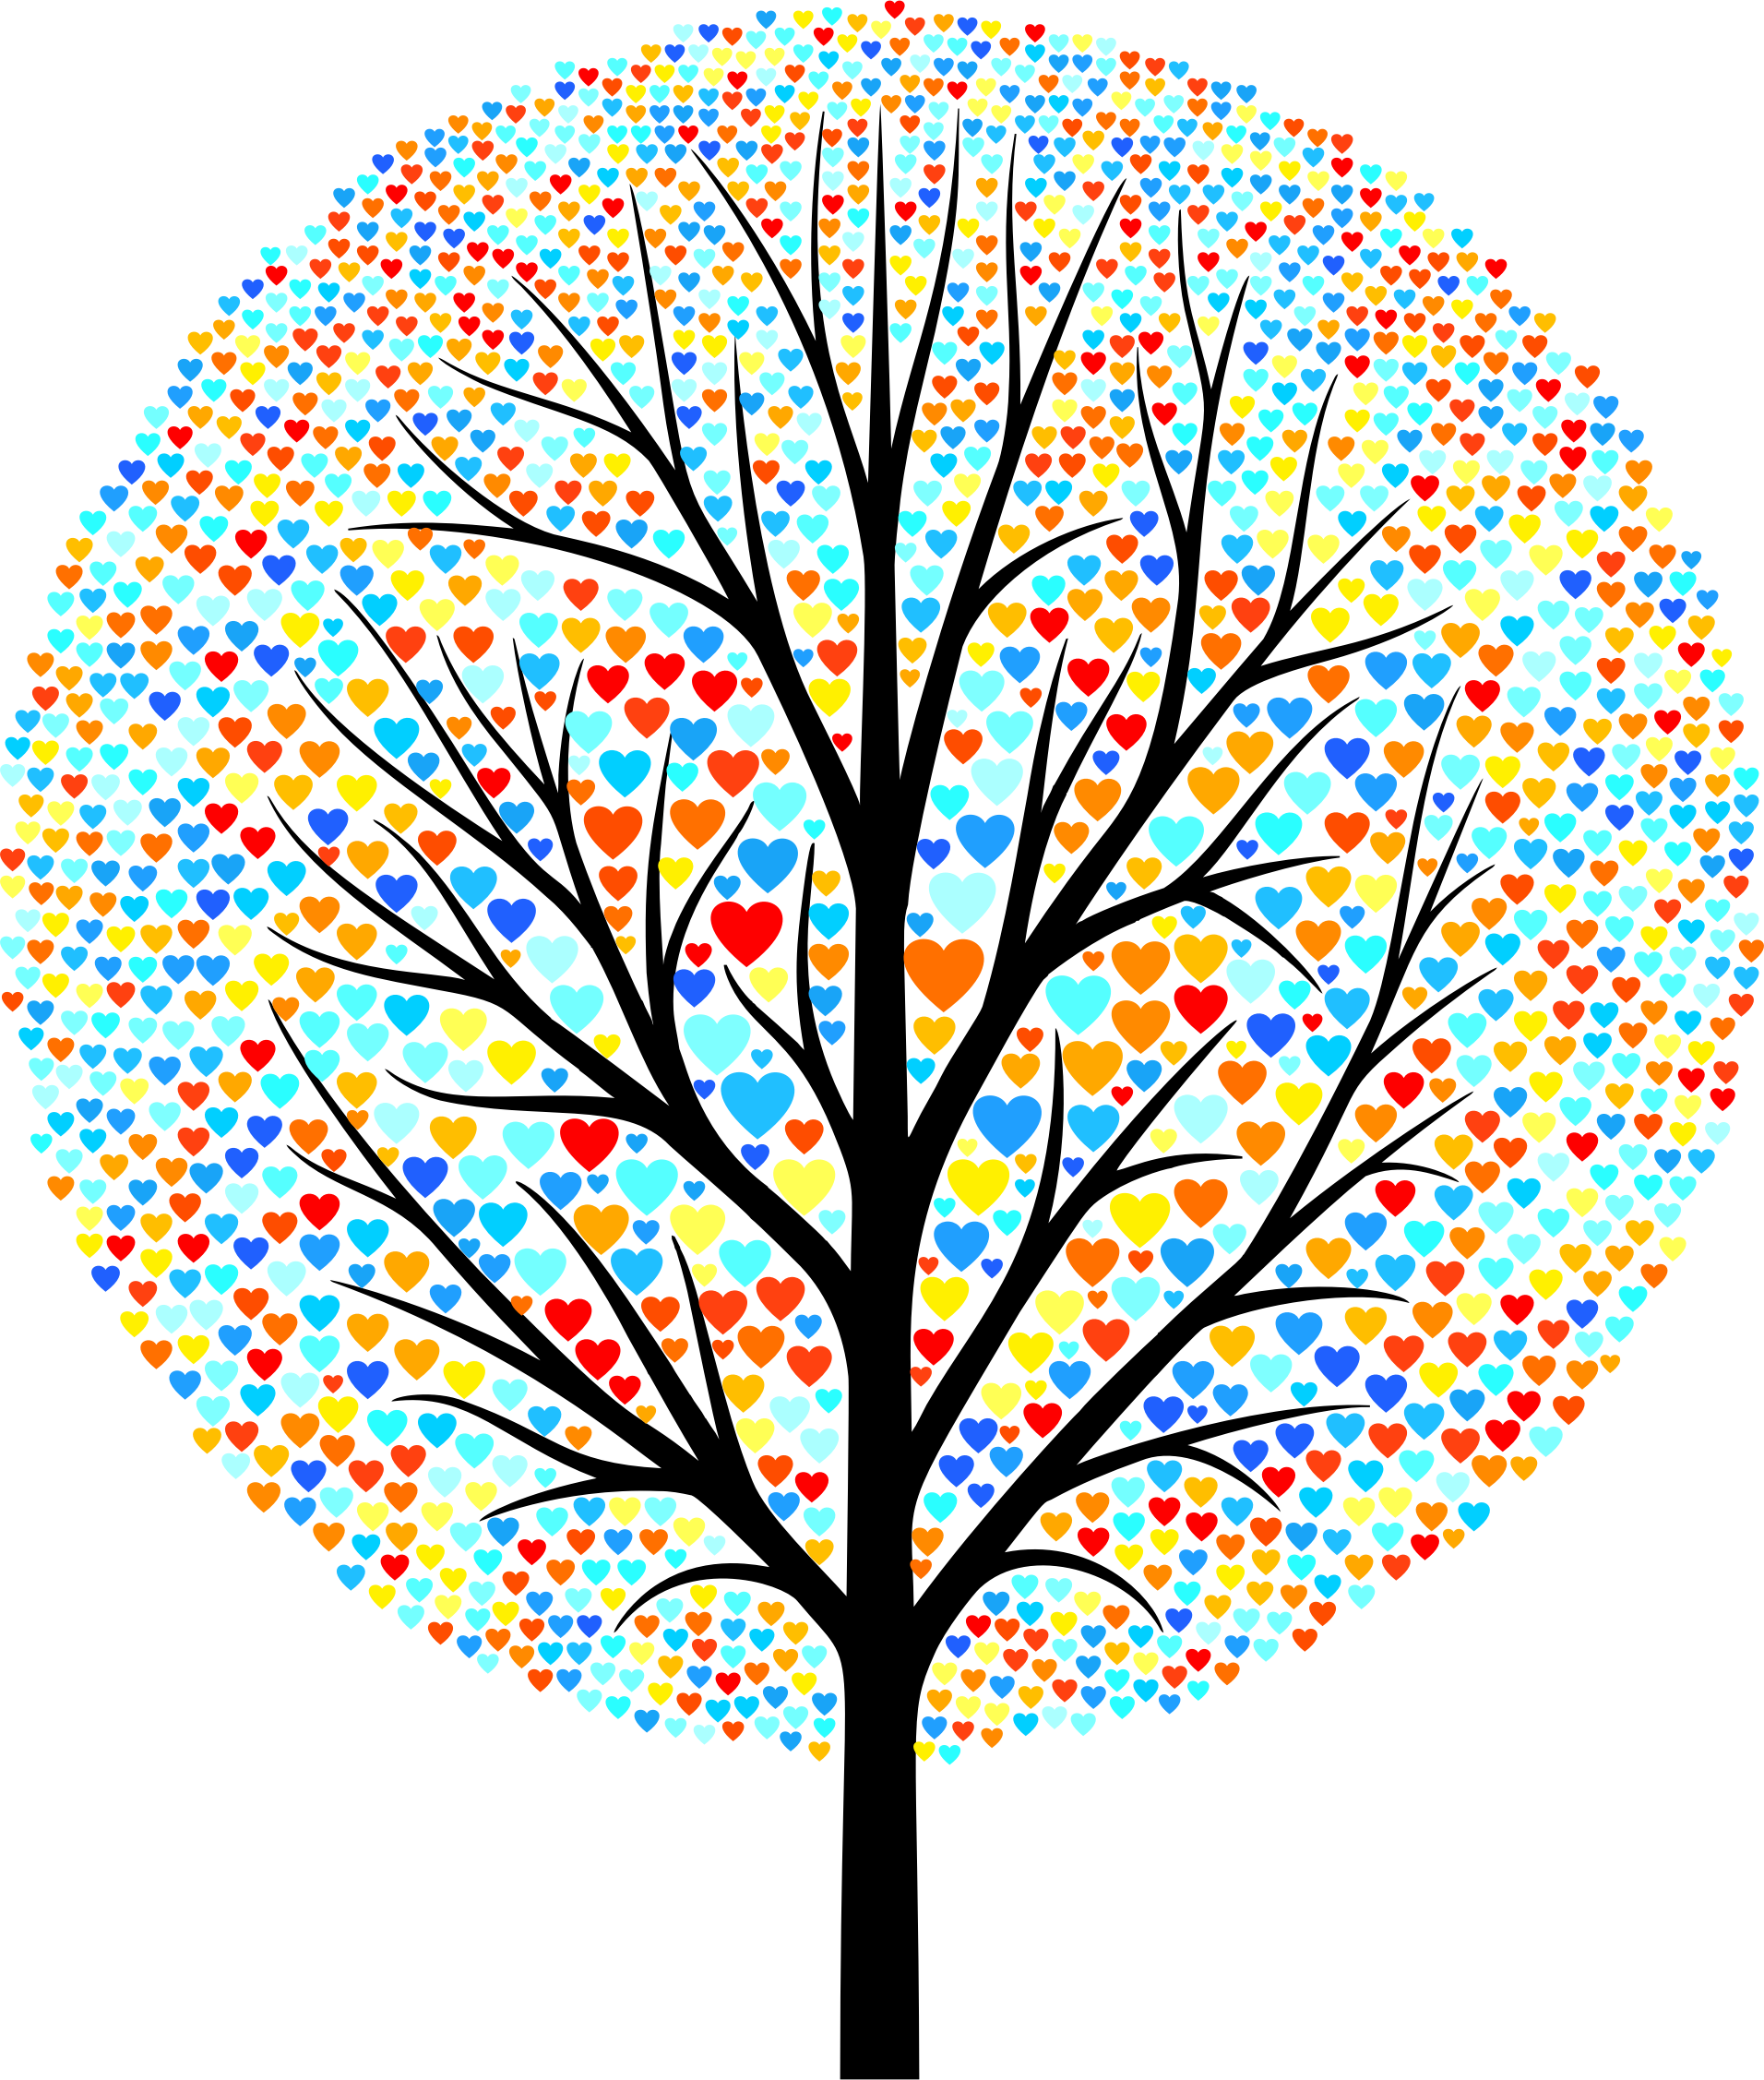 Tree big image png. Clipart hearts plant